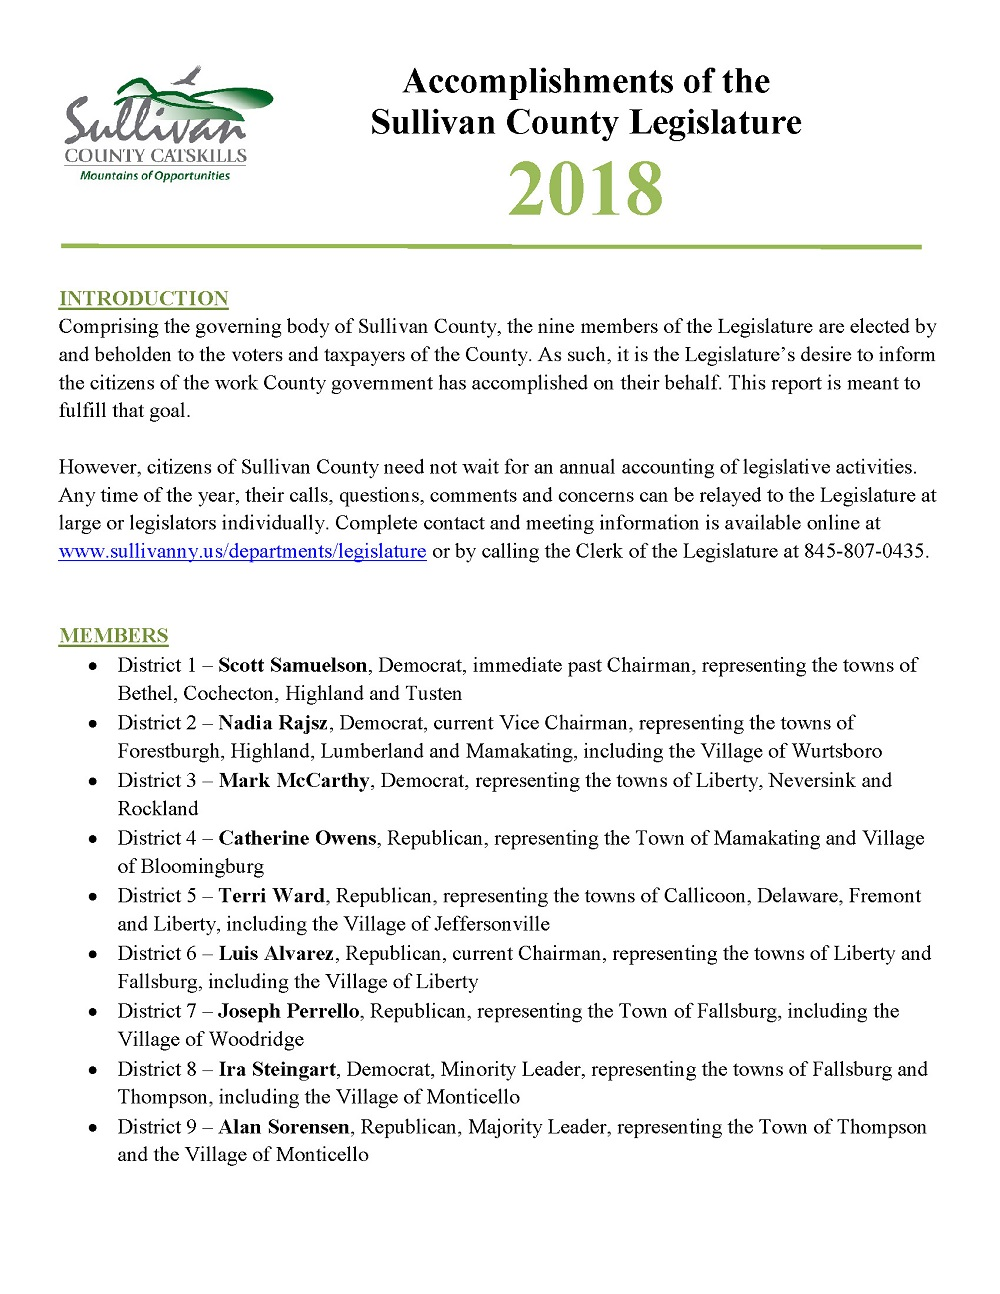 2018 Legislature Accomplishments, First Page